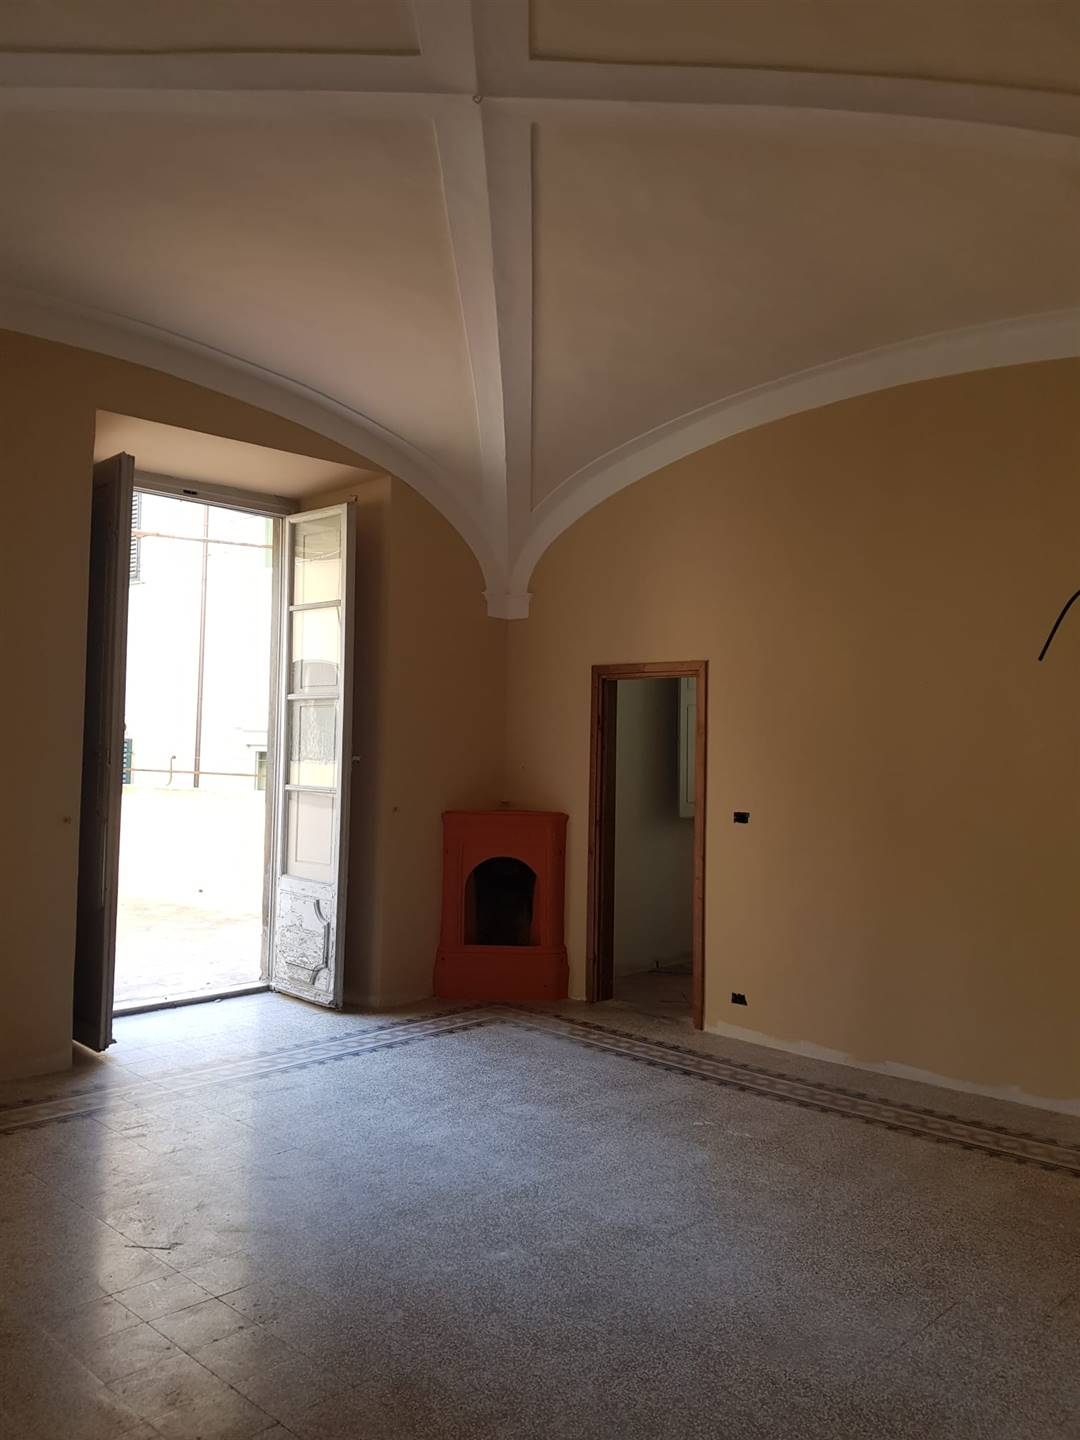 CENTRO STORICO, FIRENZE, Apartment for rent of 100 Sq. mt., Restored, Heating Individual heating system, Energetic class: Not subject, placed at 1°